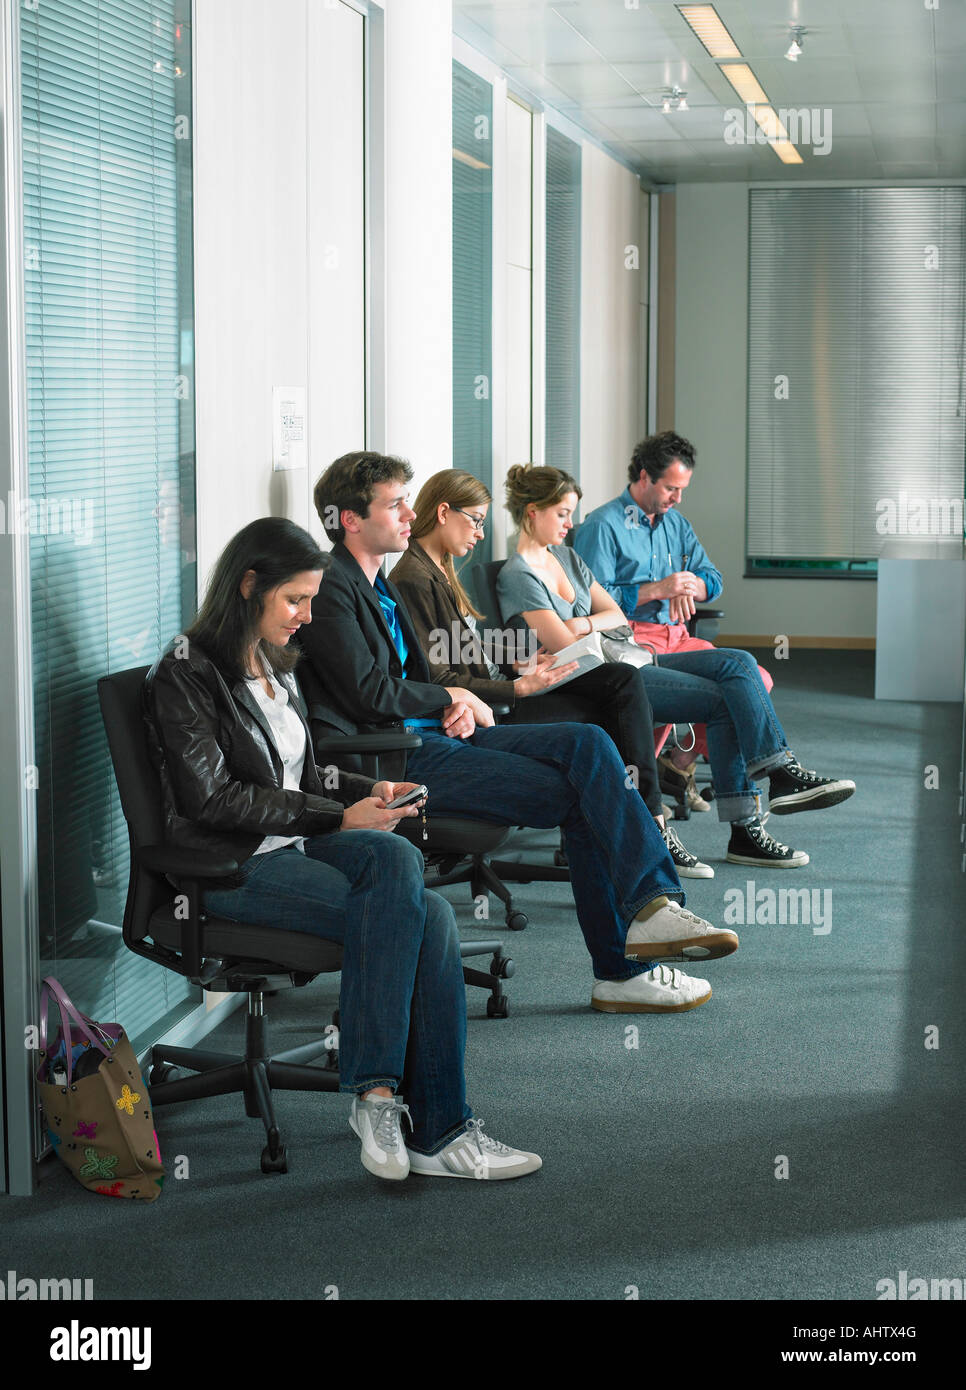 Patients sitting in waiting room of a hospital. - Stock Image